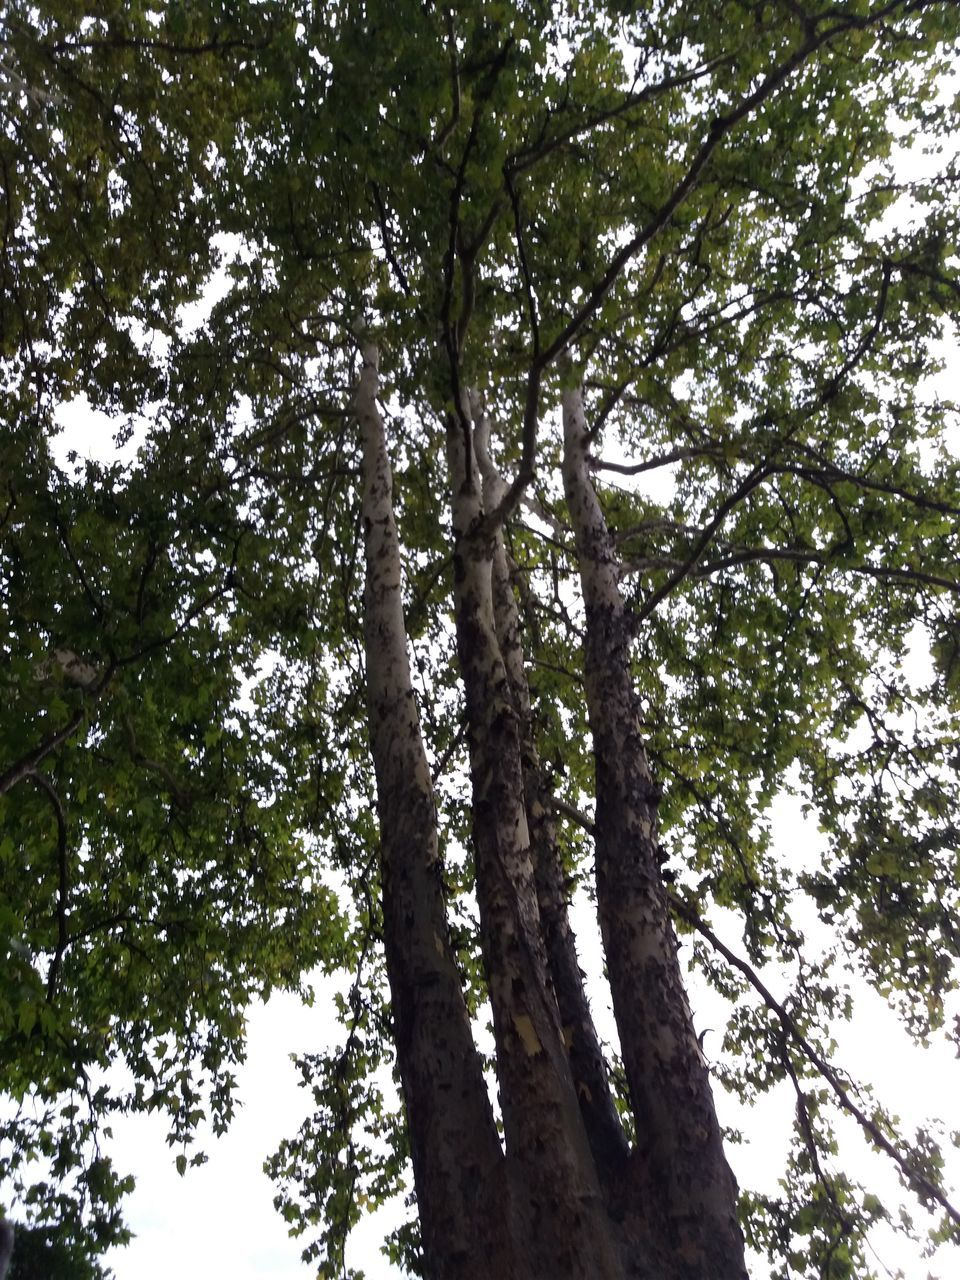 tree, low angle view, nature, growth, branch, day, outdoors, no people, tree trunk, tranquility, beauty in nature, forest, sky